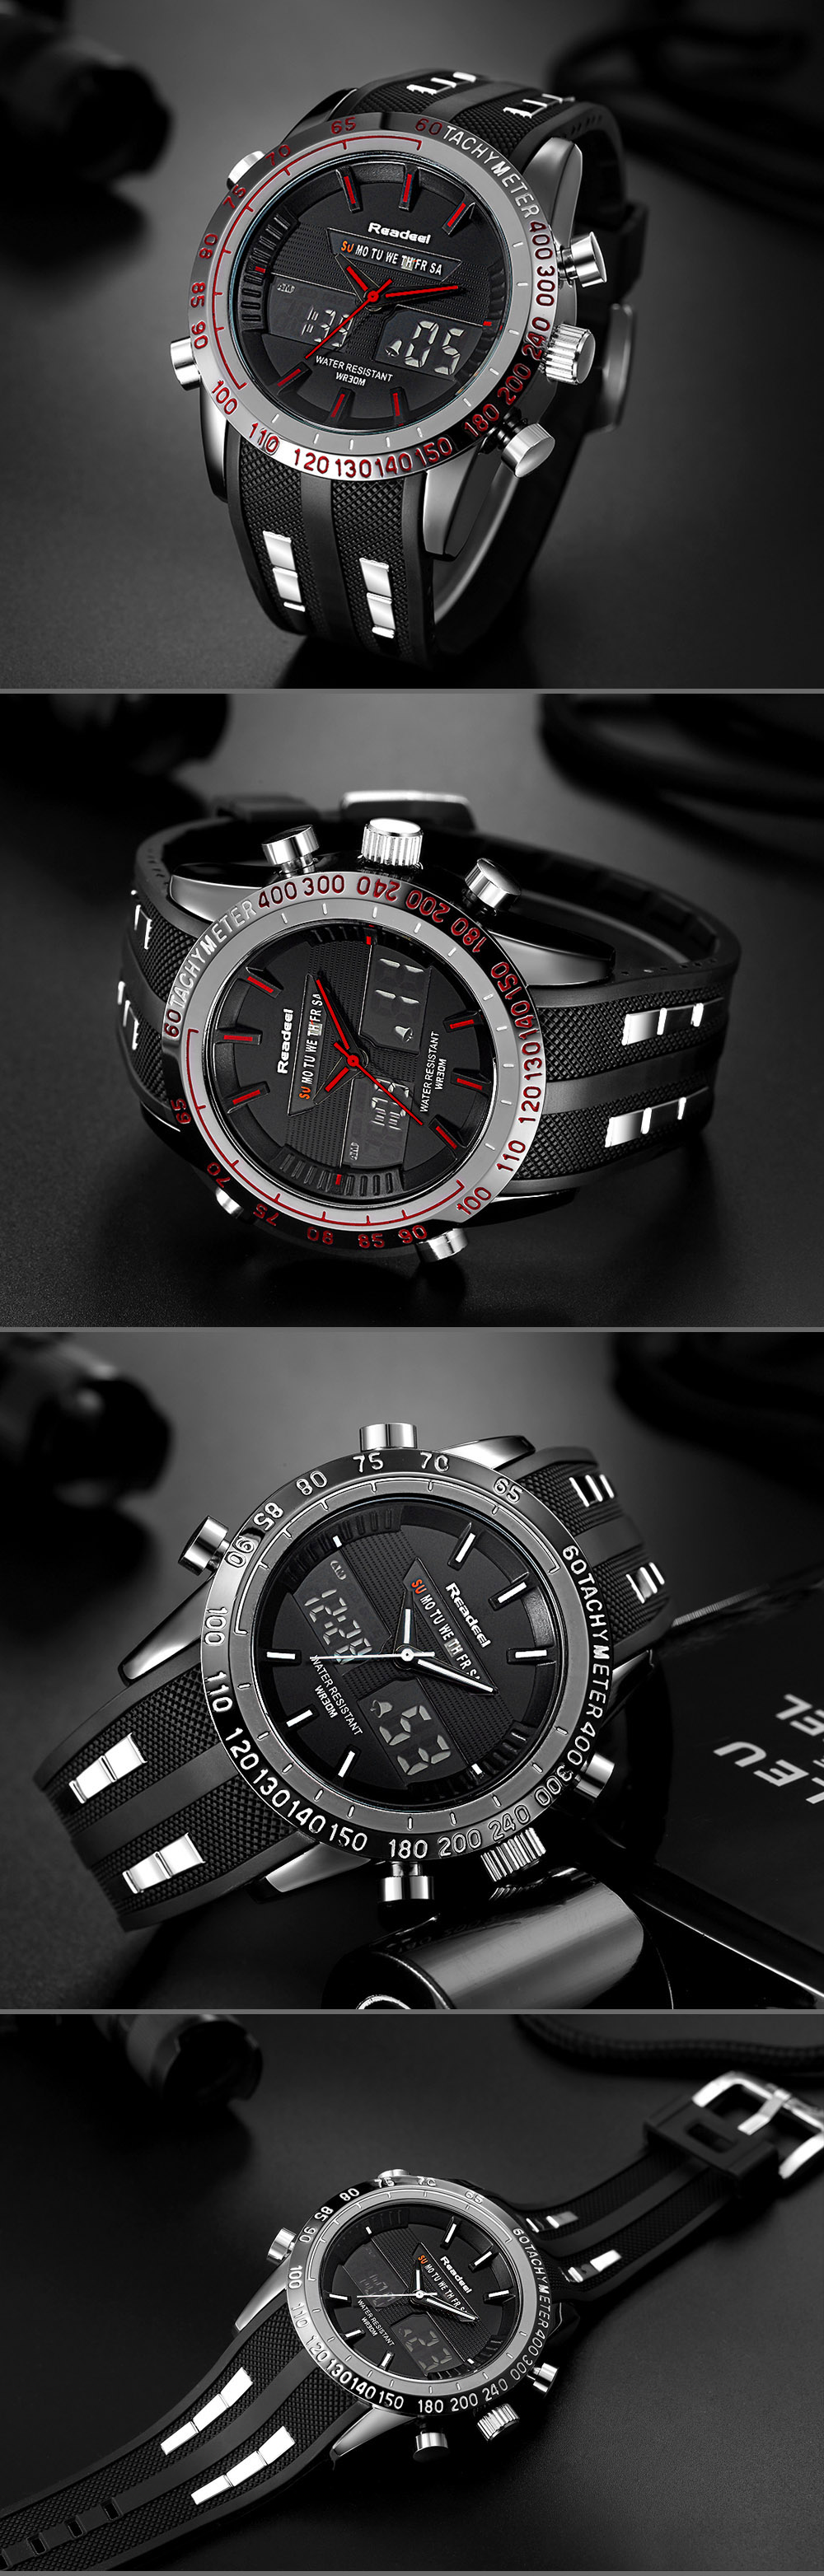 Brand New Men Sports Watches Waterproof Mens Military Digital Quartz Watch Alarm Stopwatch Dual Time Zones relogio masculino